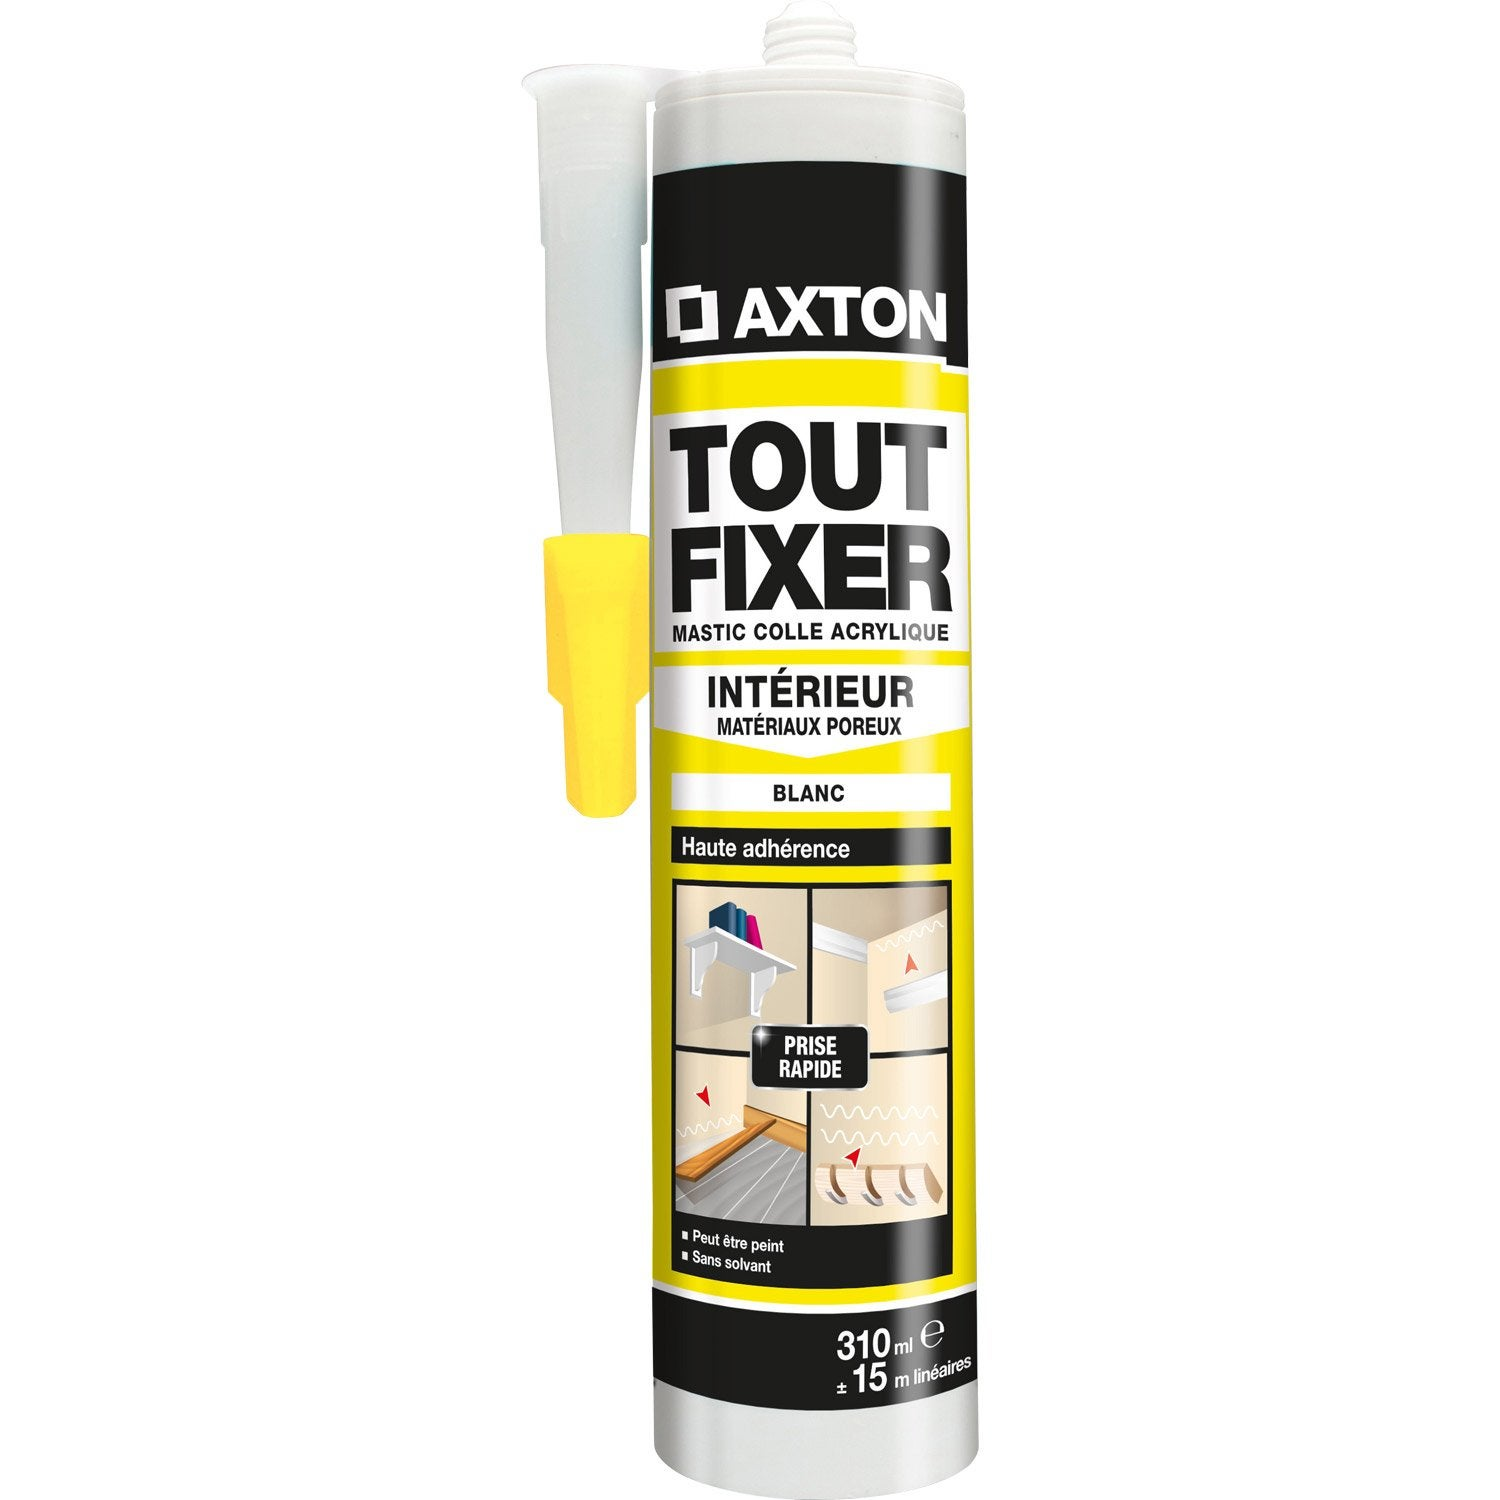 Colle mastic tout fixer axton 310 ml leroy merlin for Quelle colle pour carrelage exterieur